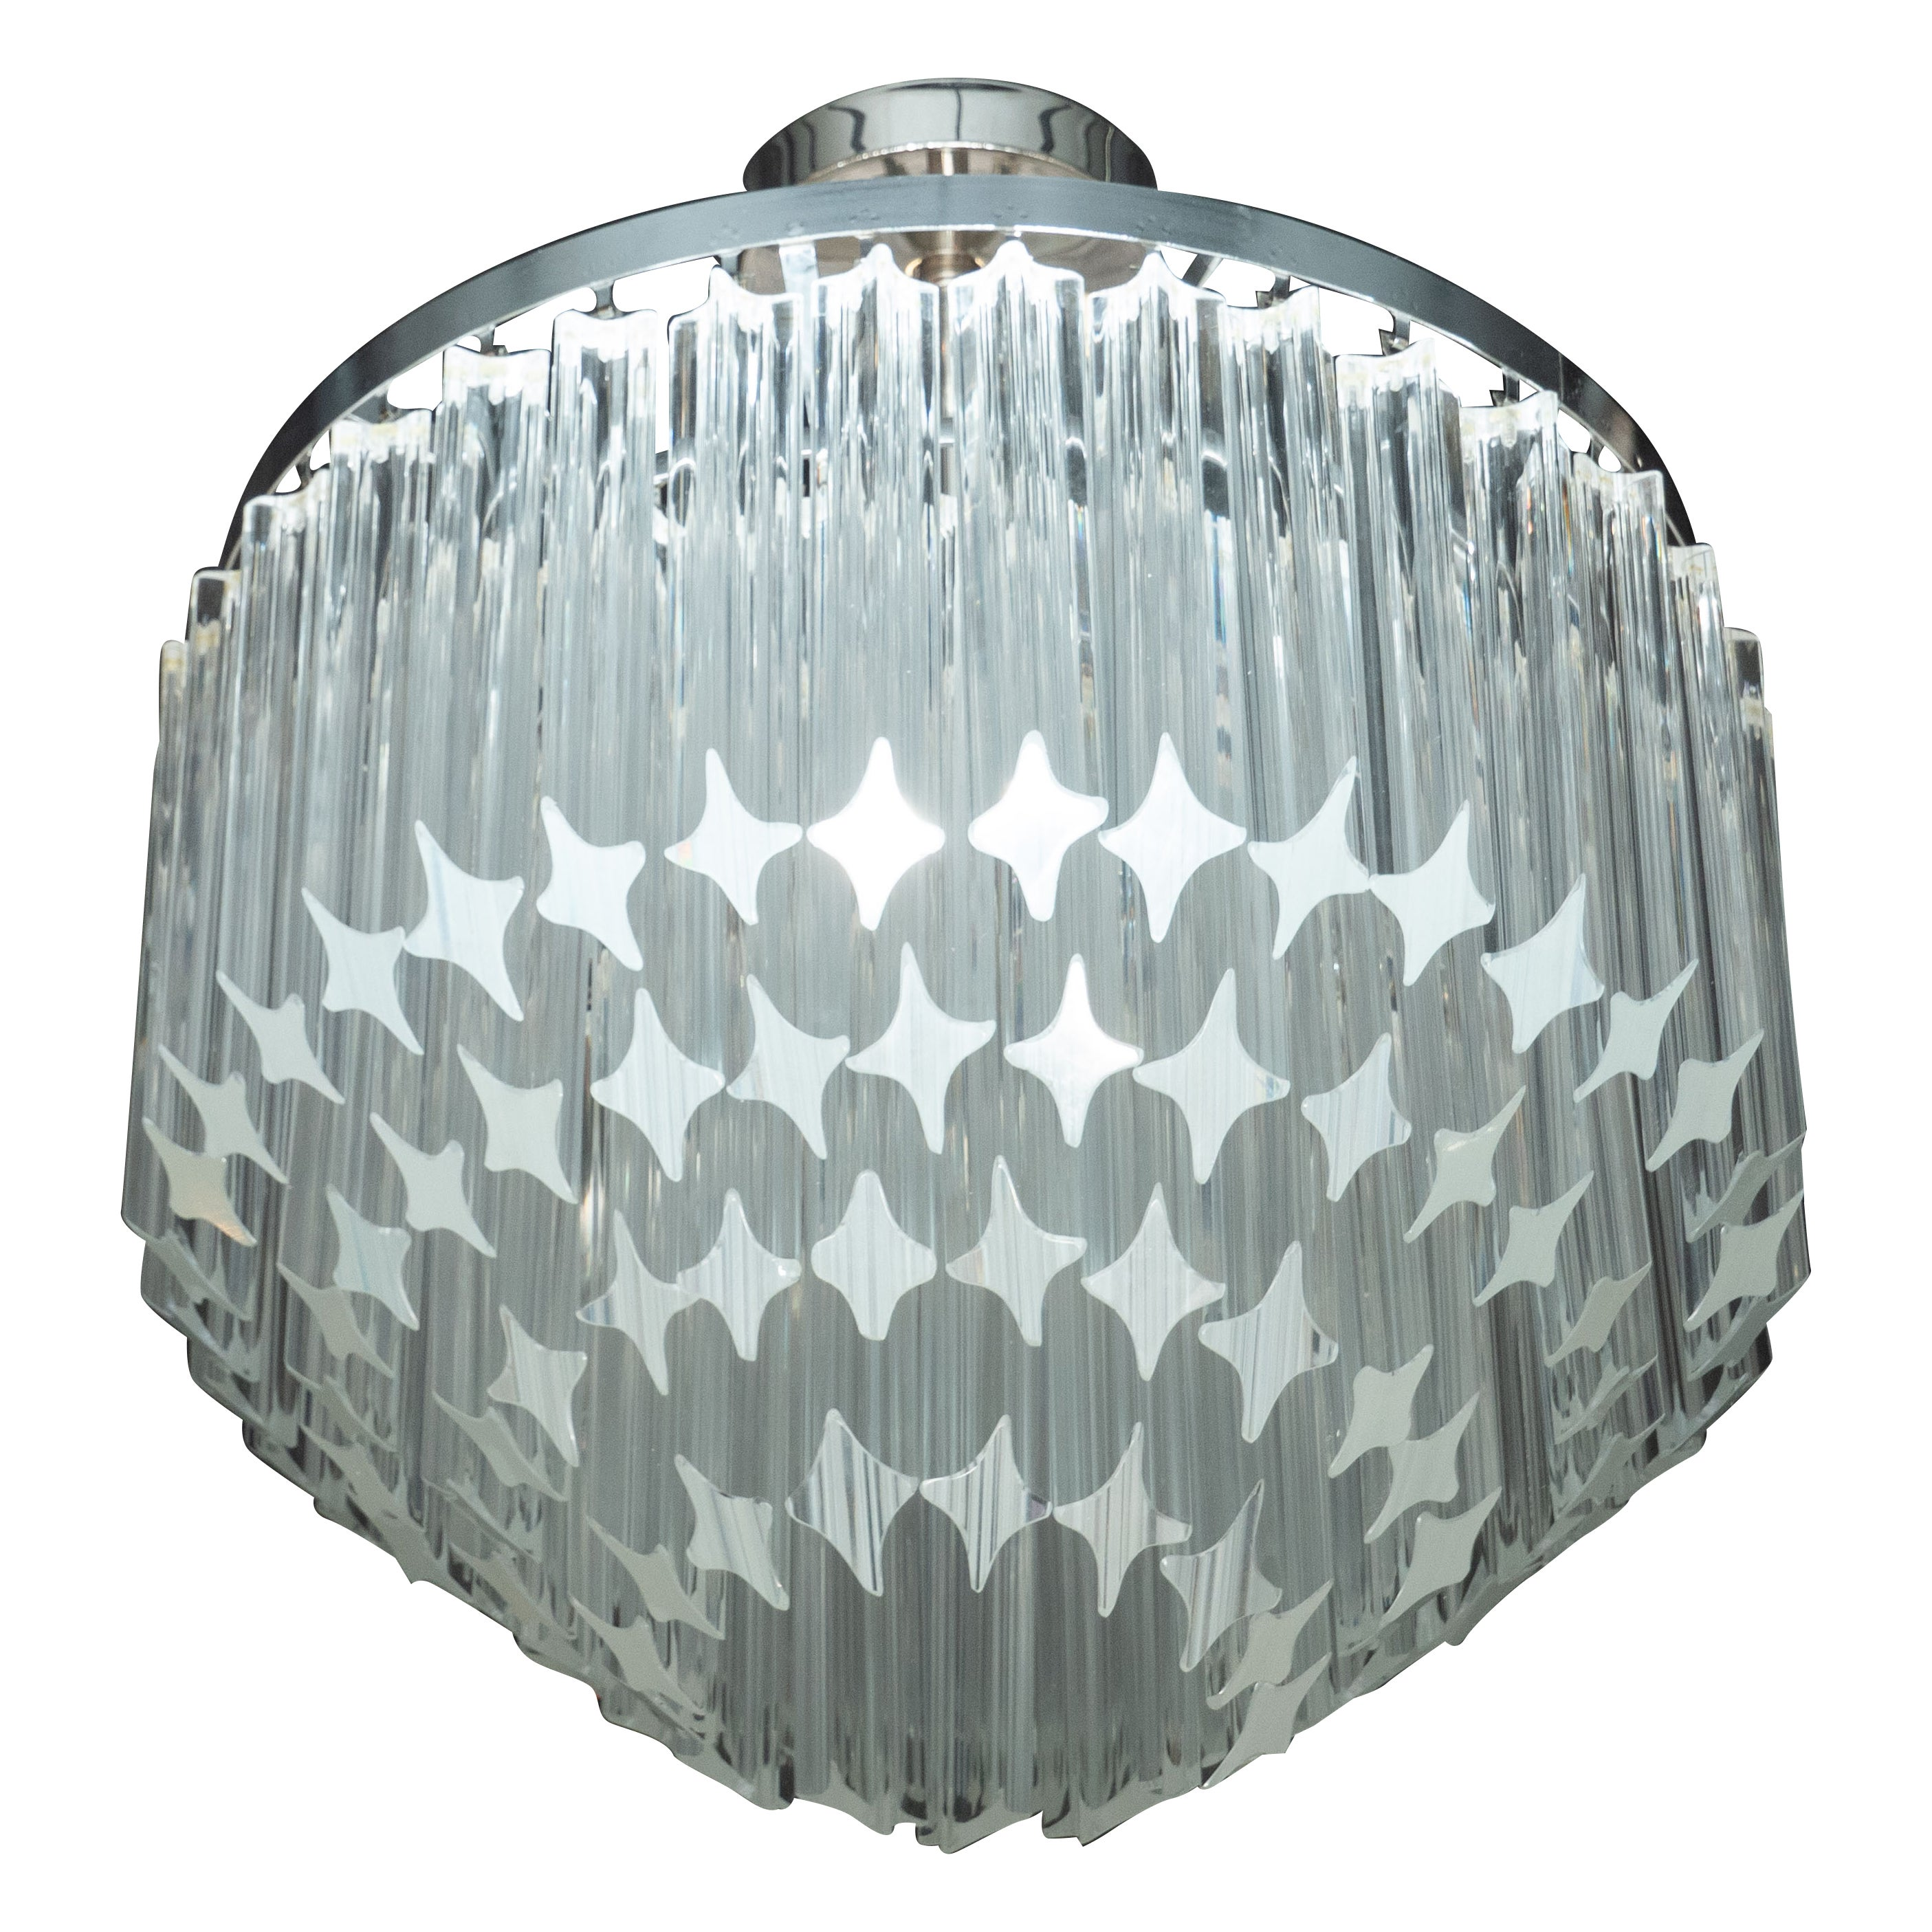 Italian Mid-Century Modern Camer Chandelier with Chrome Detailing